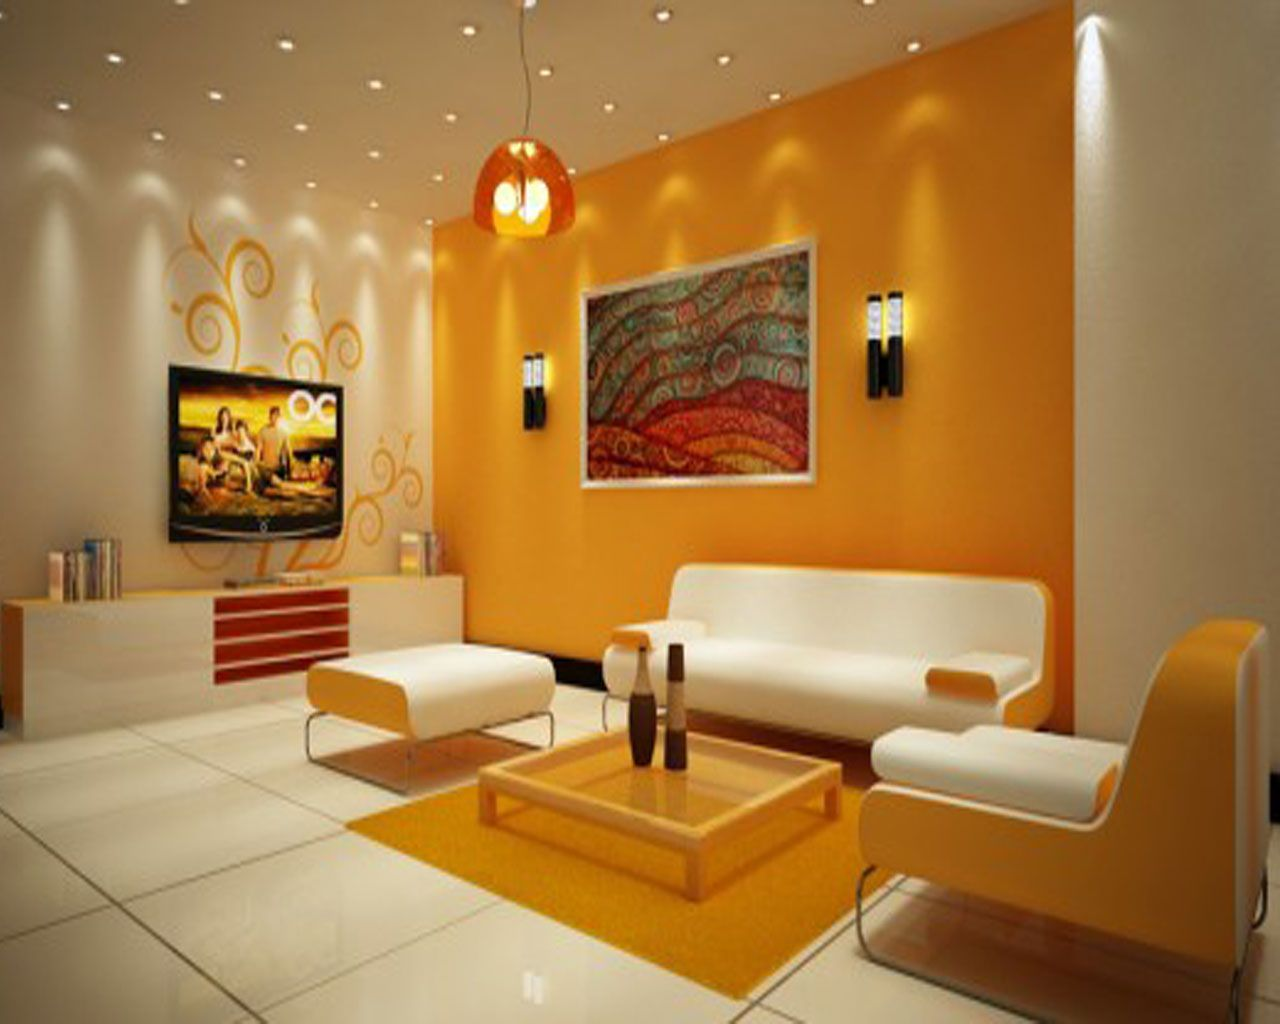 Interior  Gorgeous Yellow Mixed White Wall Paint Best Living Room Design  Ideas With Stunning Yellow. Interior  Gorgeous Yellow Mixed White Wall Paint Best Living Room